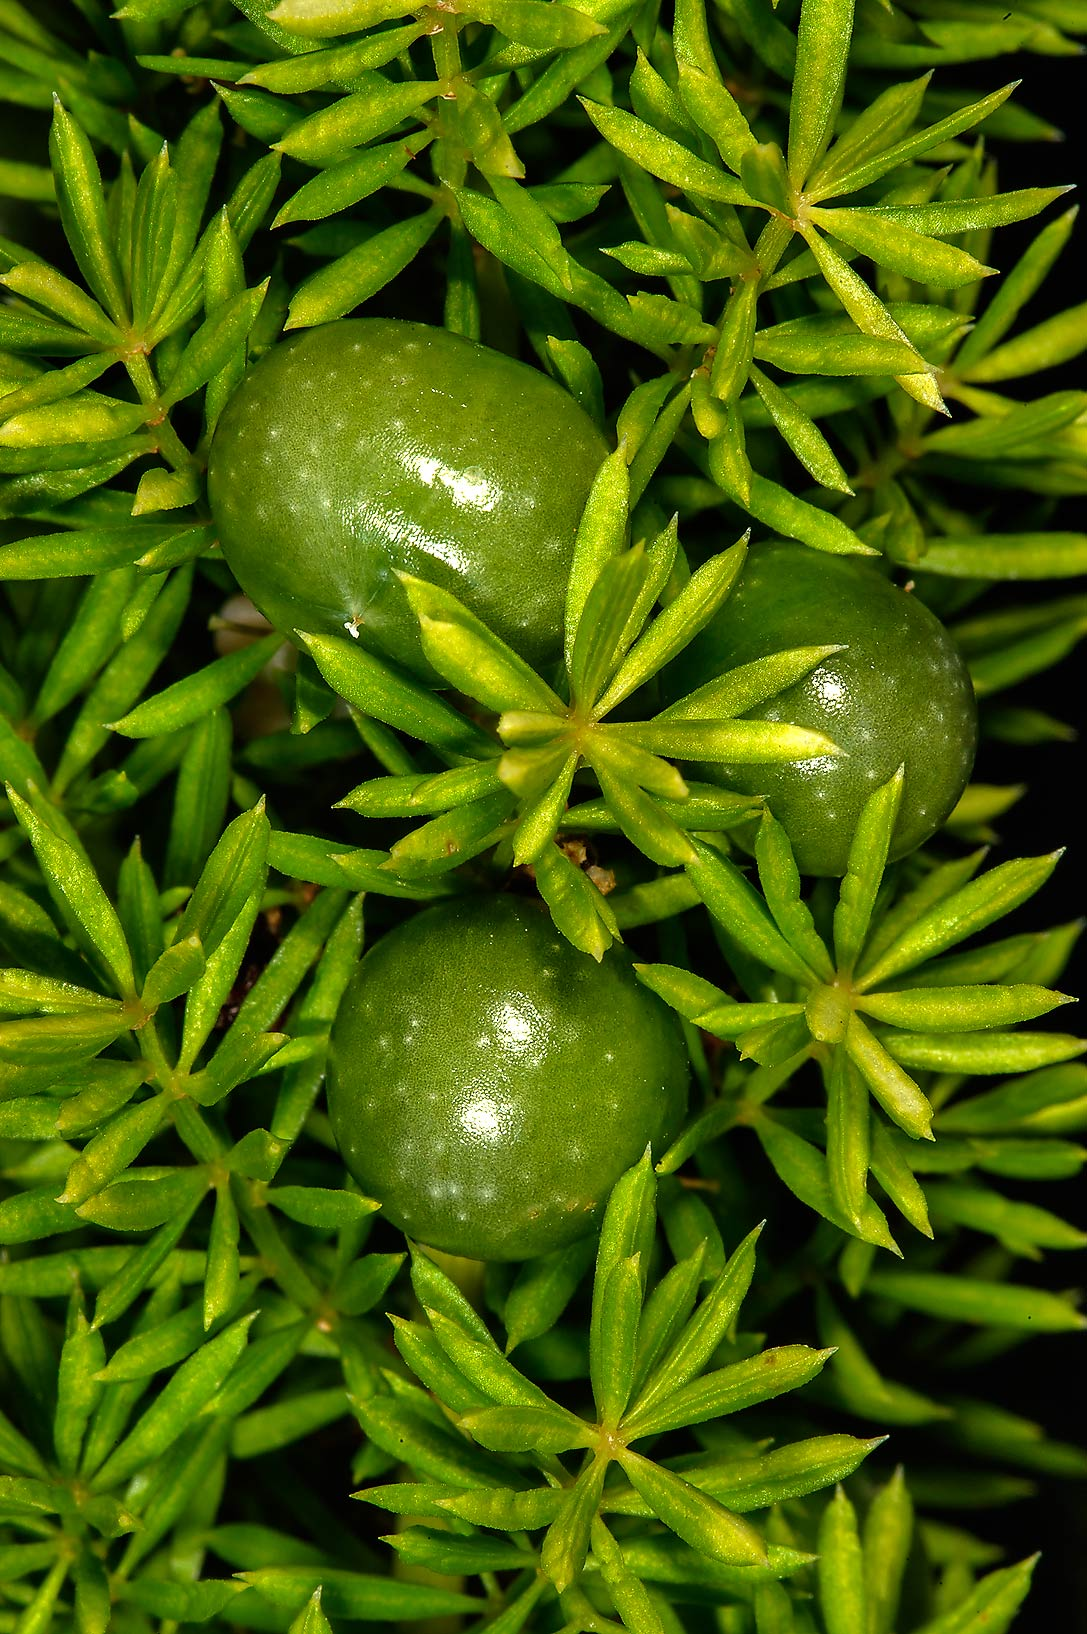 Green berries of asparagus fern (Asparagus...M University. College Station, Texas